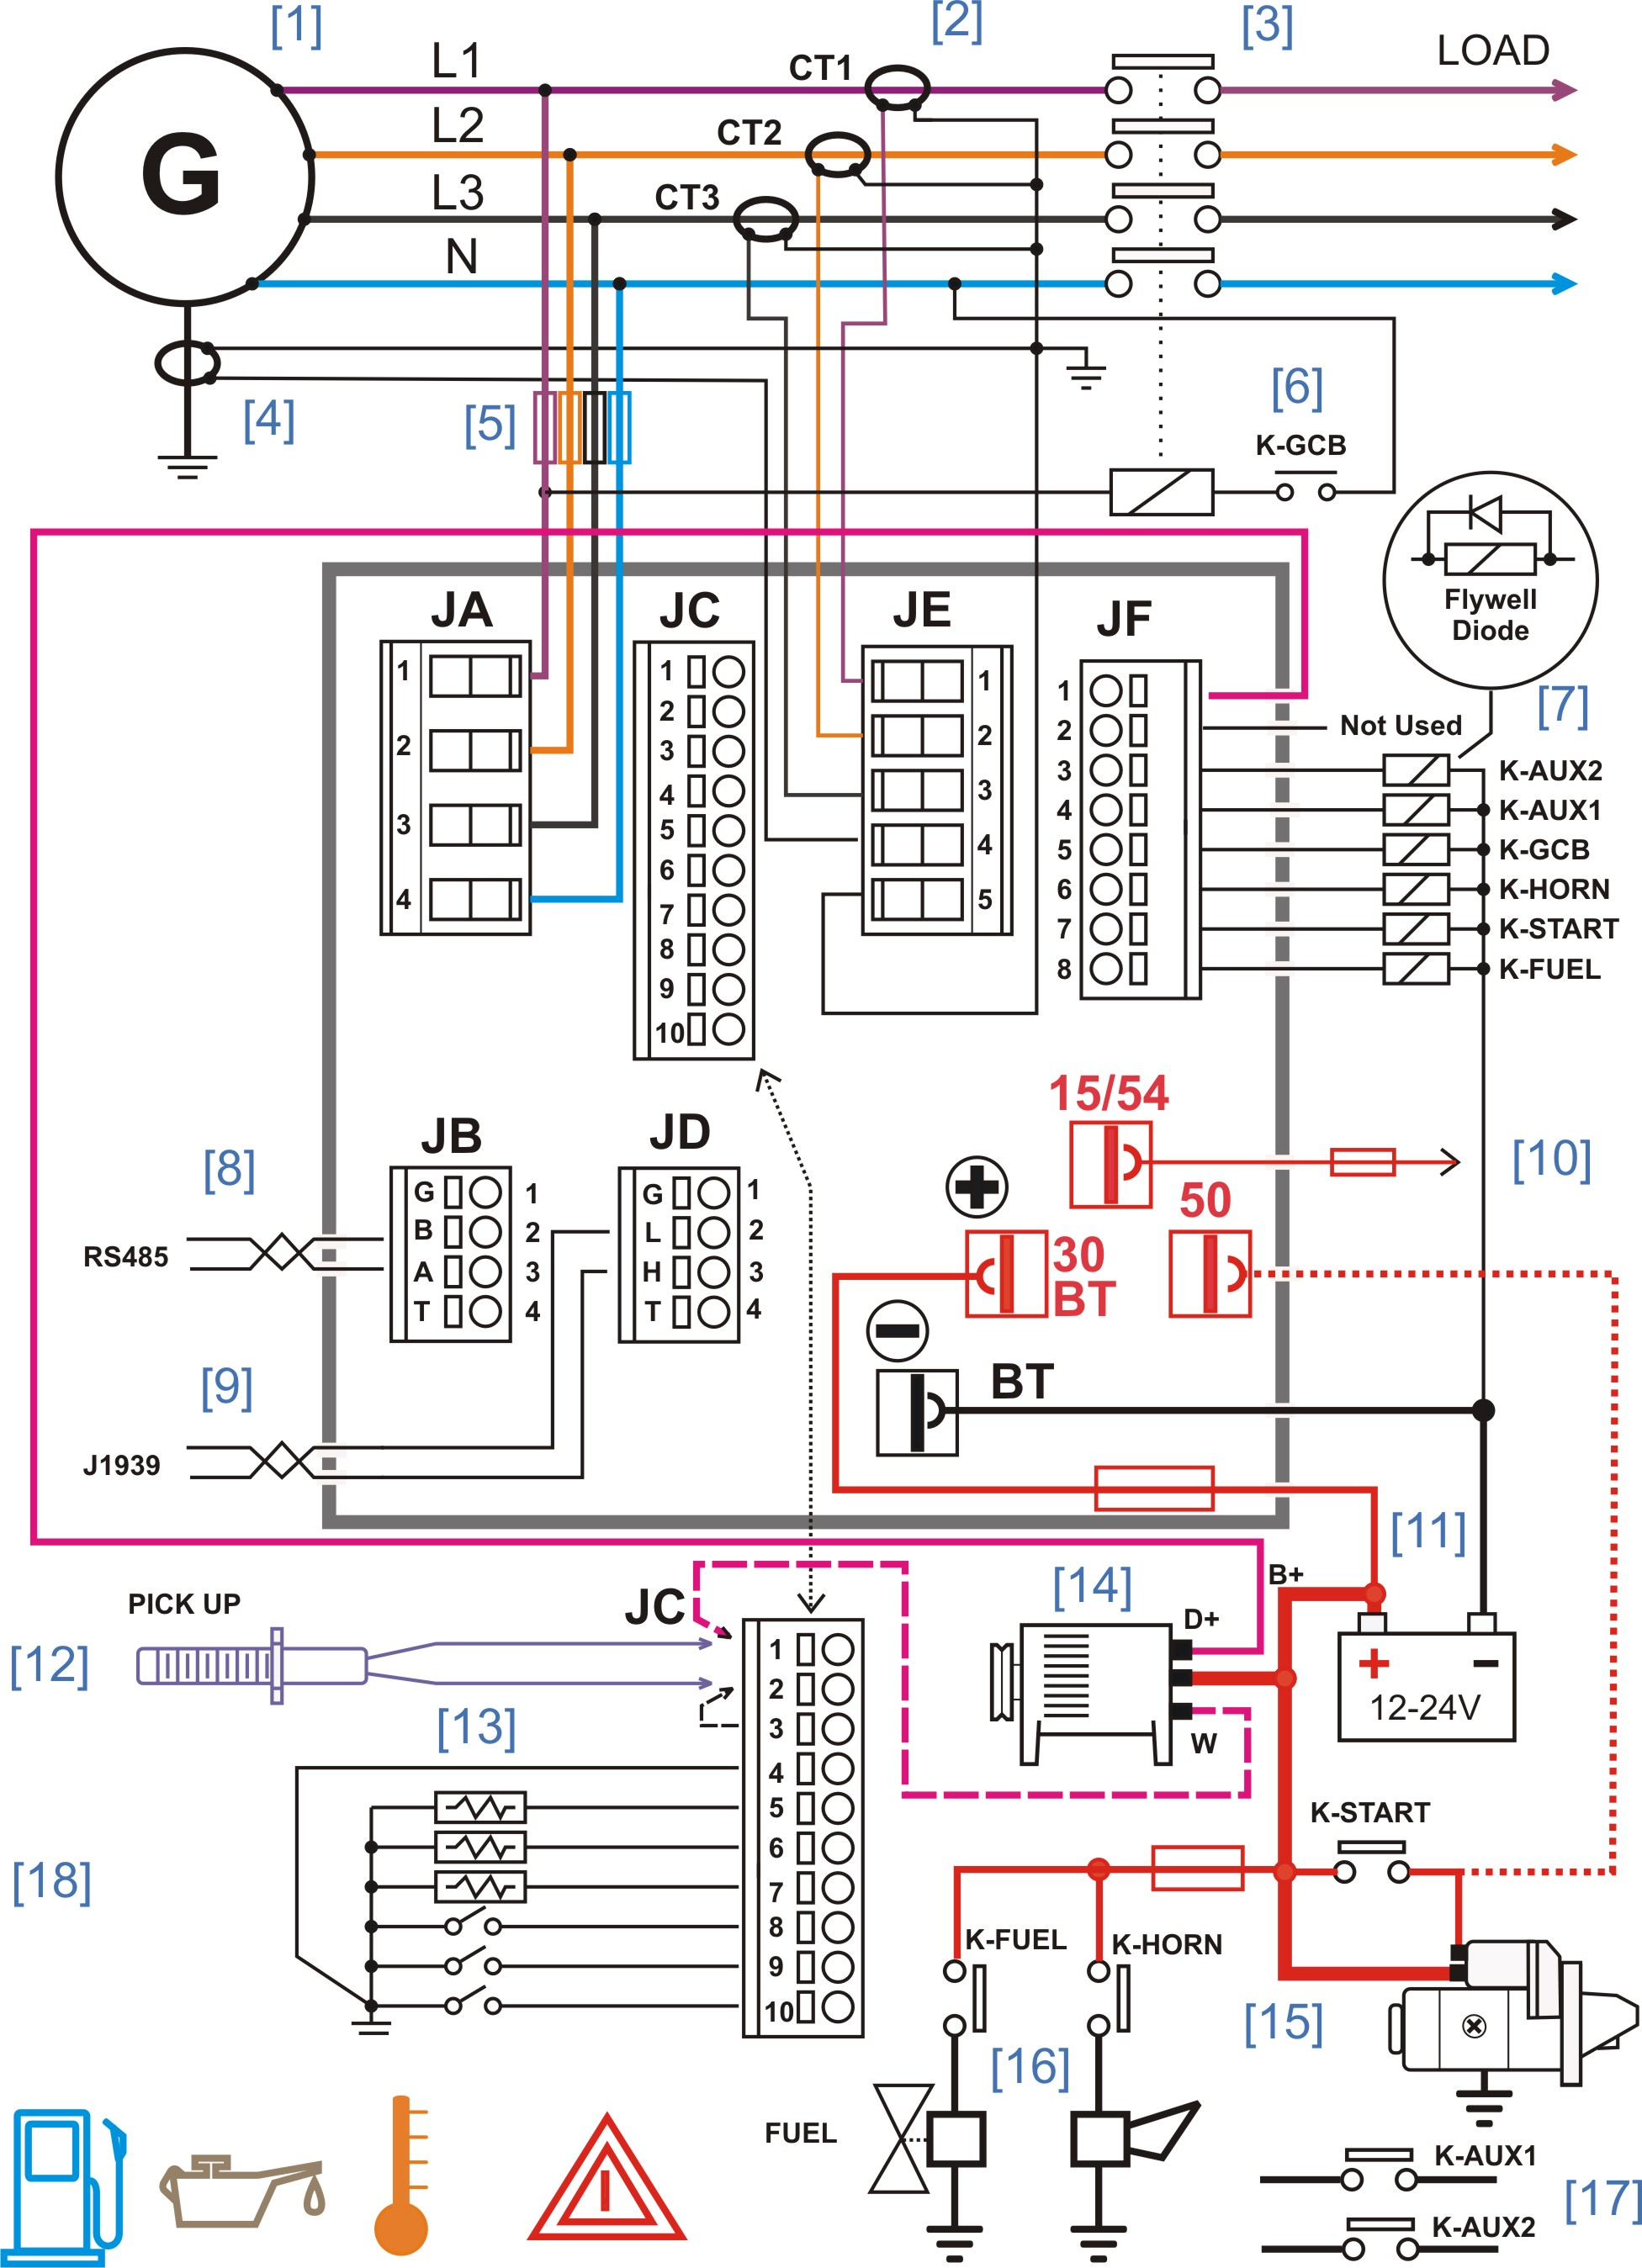 diesel generator control panel wiring diagram genset control wiring diagram symbols control wiring diagram for amf panel